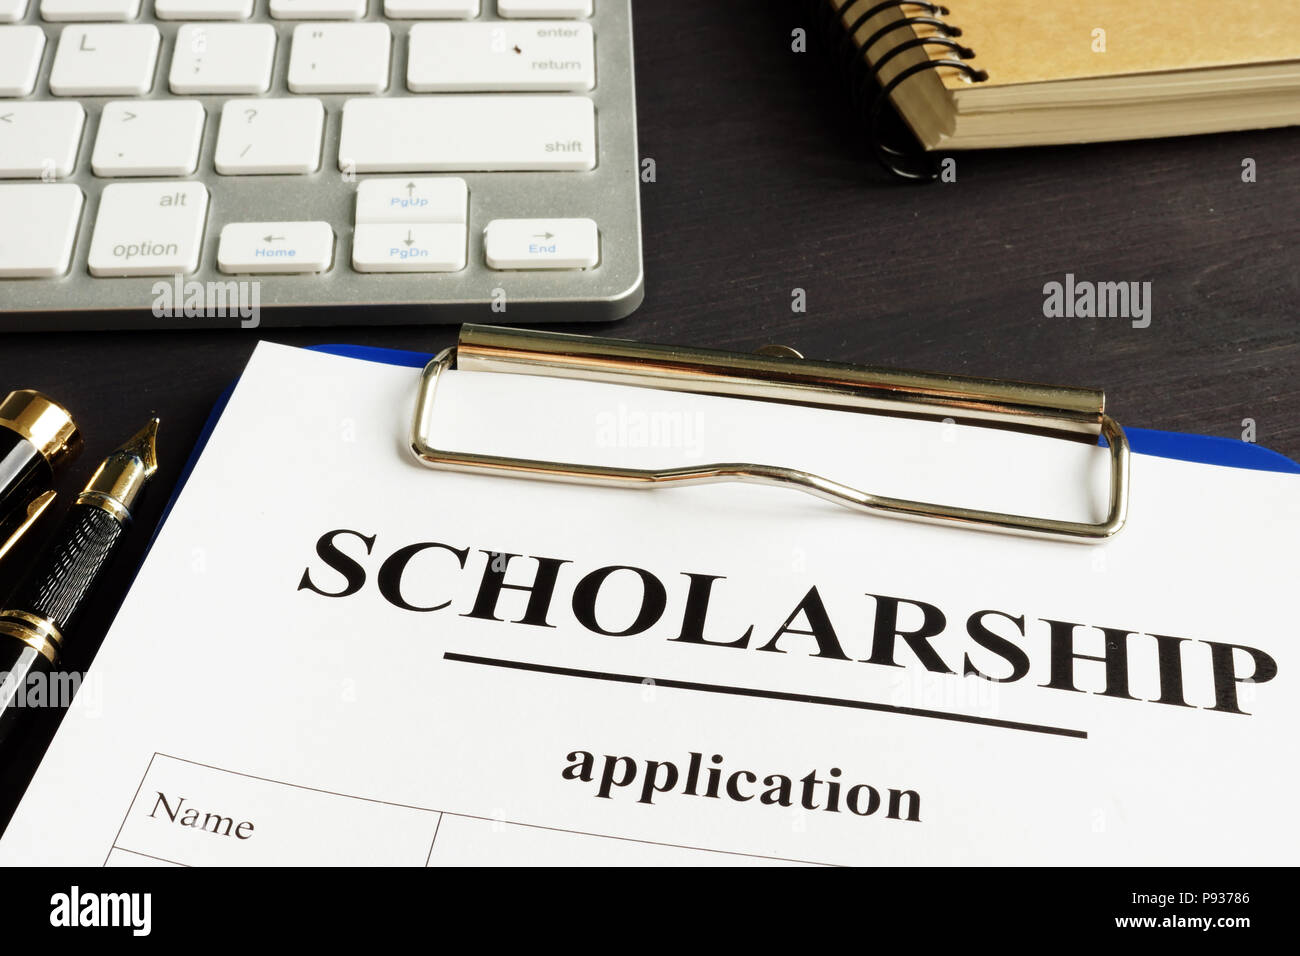 Scholarship application and money for education on a table. - Stock Image